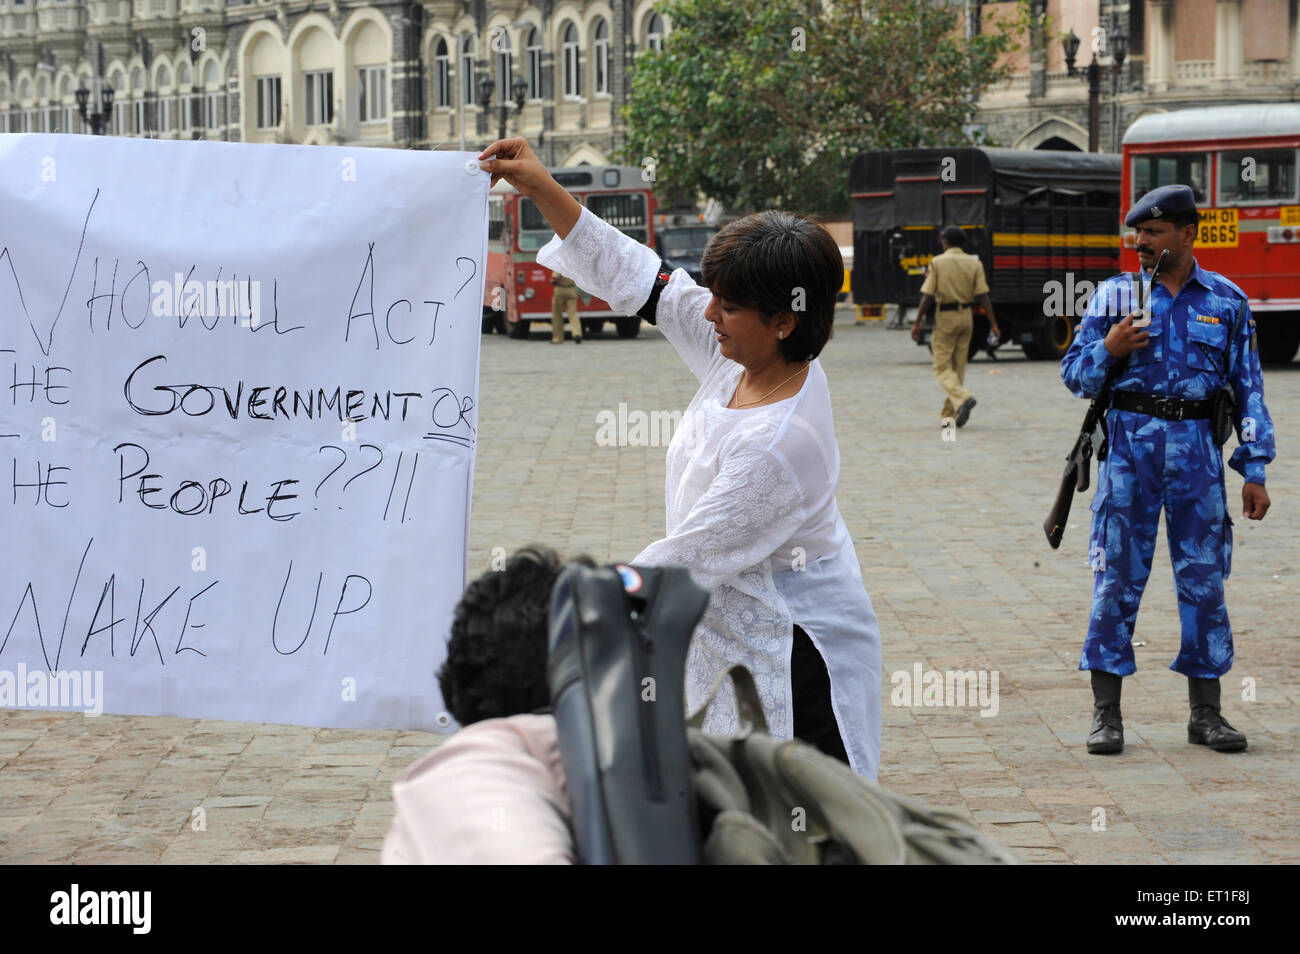 Protestor banner  Taj Mahal hotel ; after terrorist attack by Deccan Mujahedeen on 26th November 2008 in Bombay - Stock Image